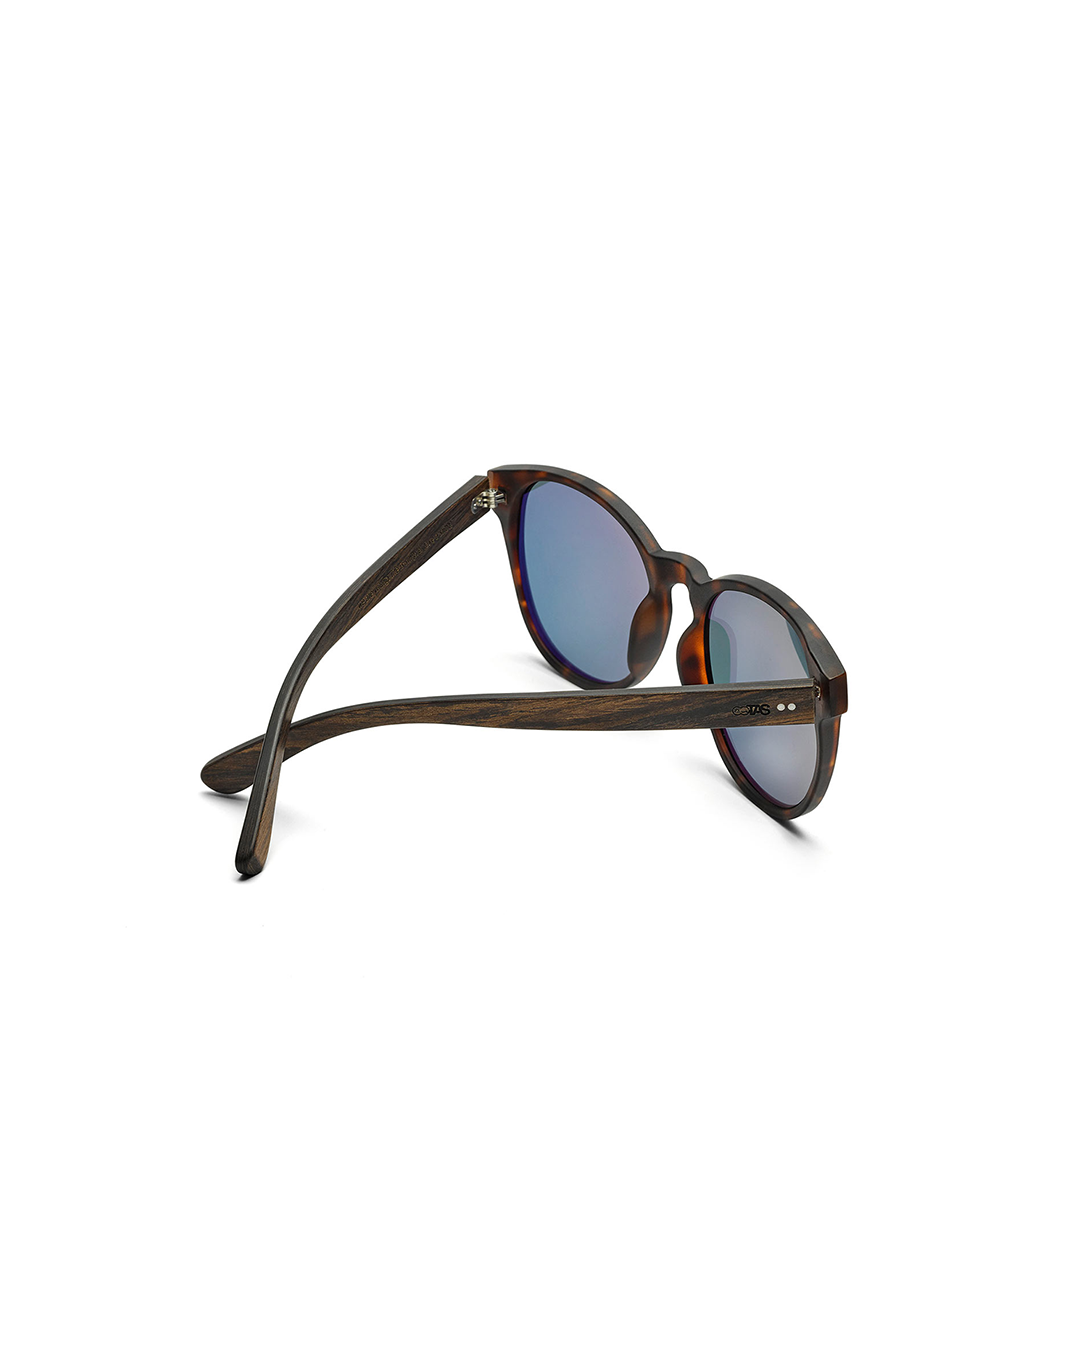 Holz-Sonnenbrille The Red Queen Unisex